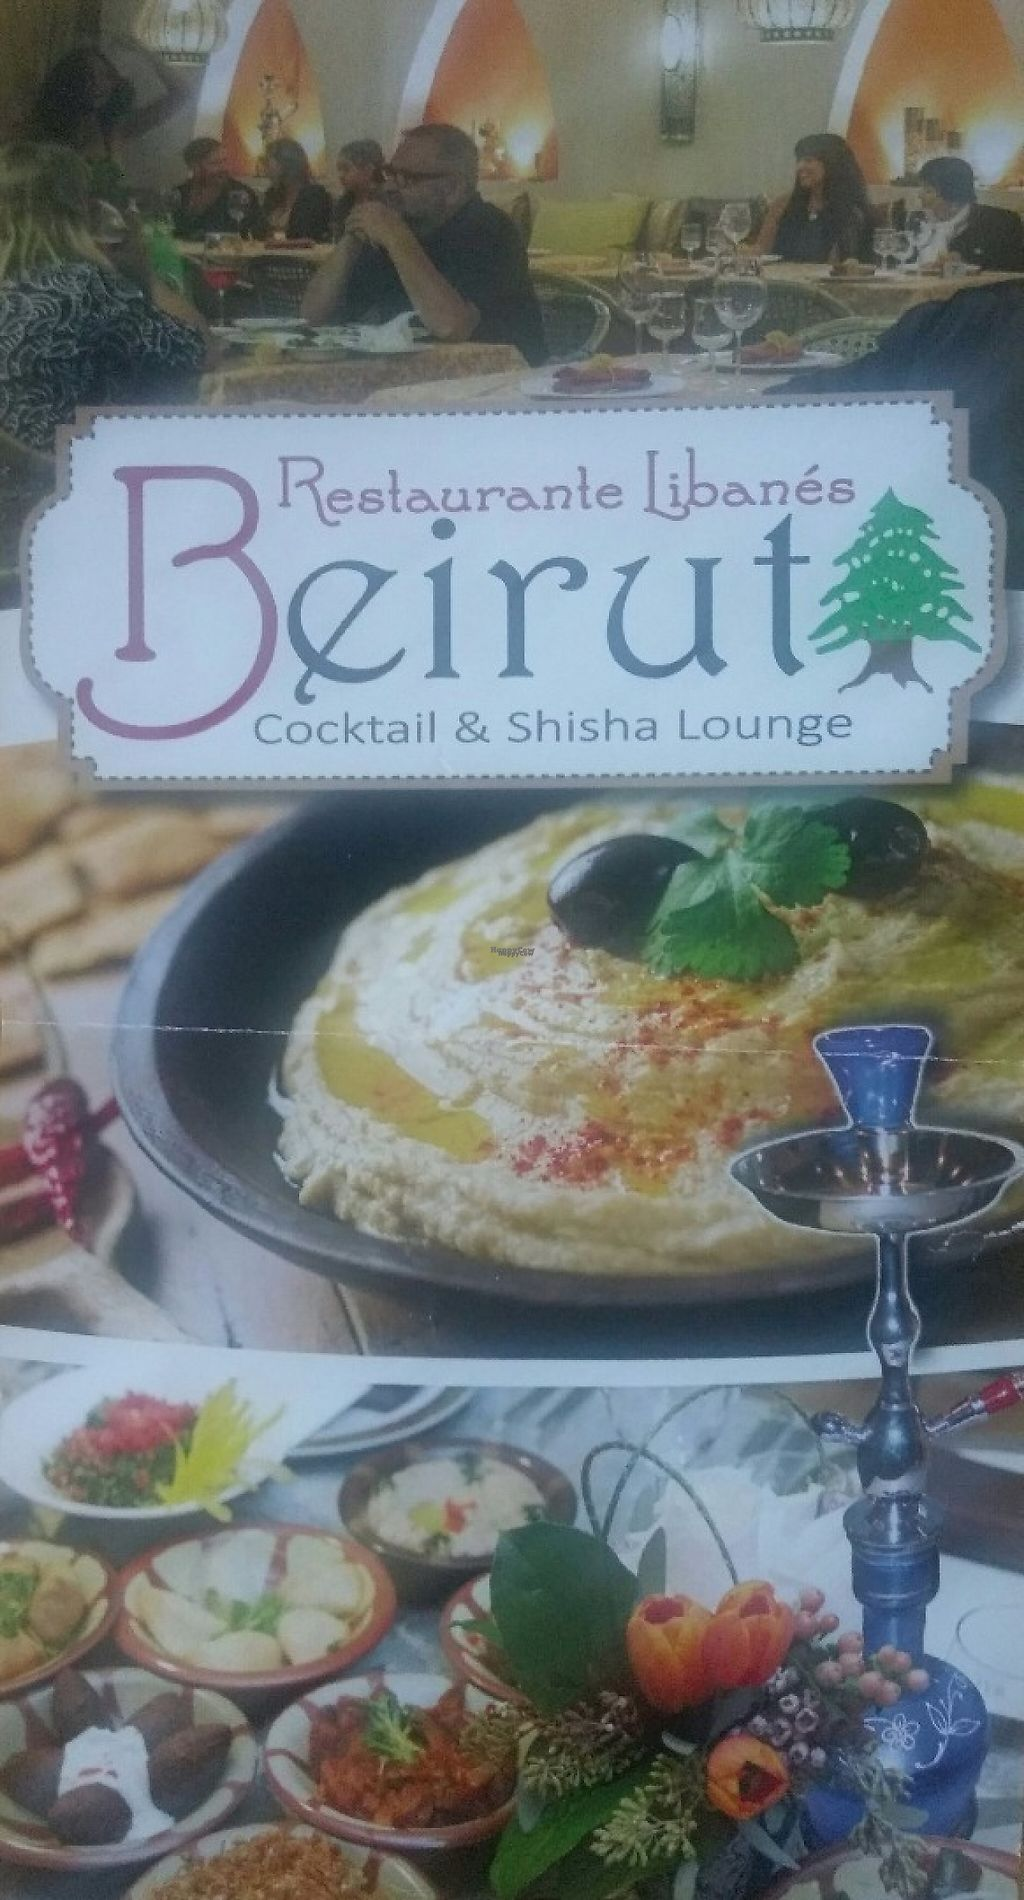 """Photo of Restaurante Beirut  by <a href=""""/members/profile/piaprik"""">piaprik</a> <br/>Restaurante Beirut <br/> January 5, 2017  - <a href='/contact/abuse/image/84891/208367'>Report</a>"""